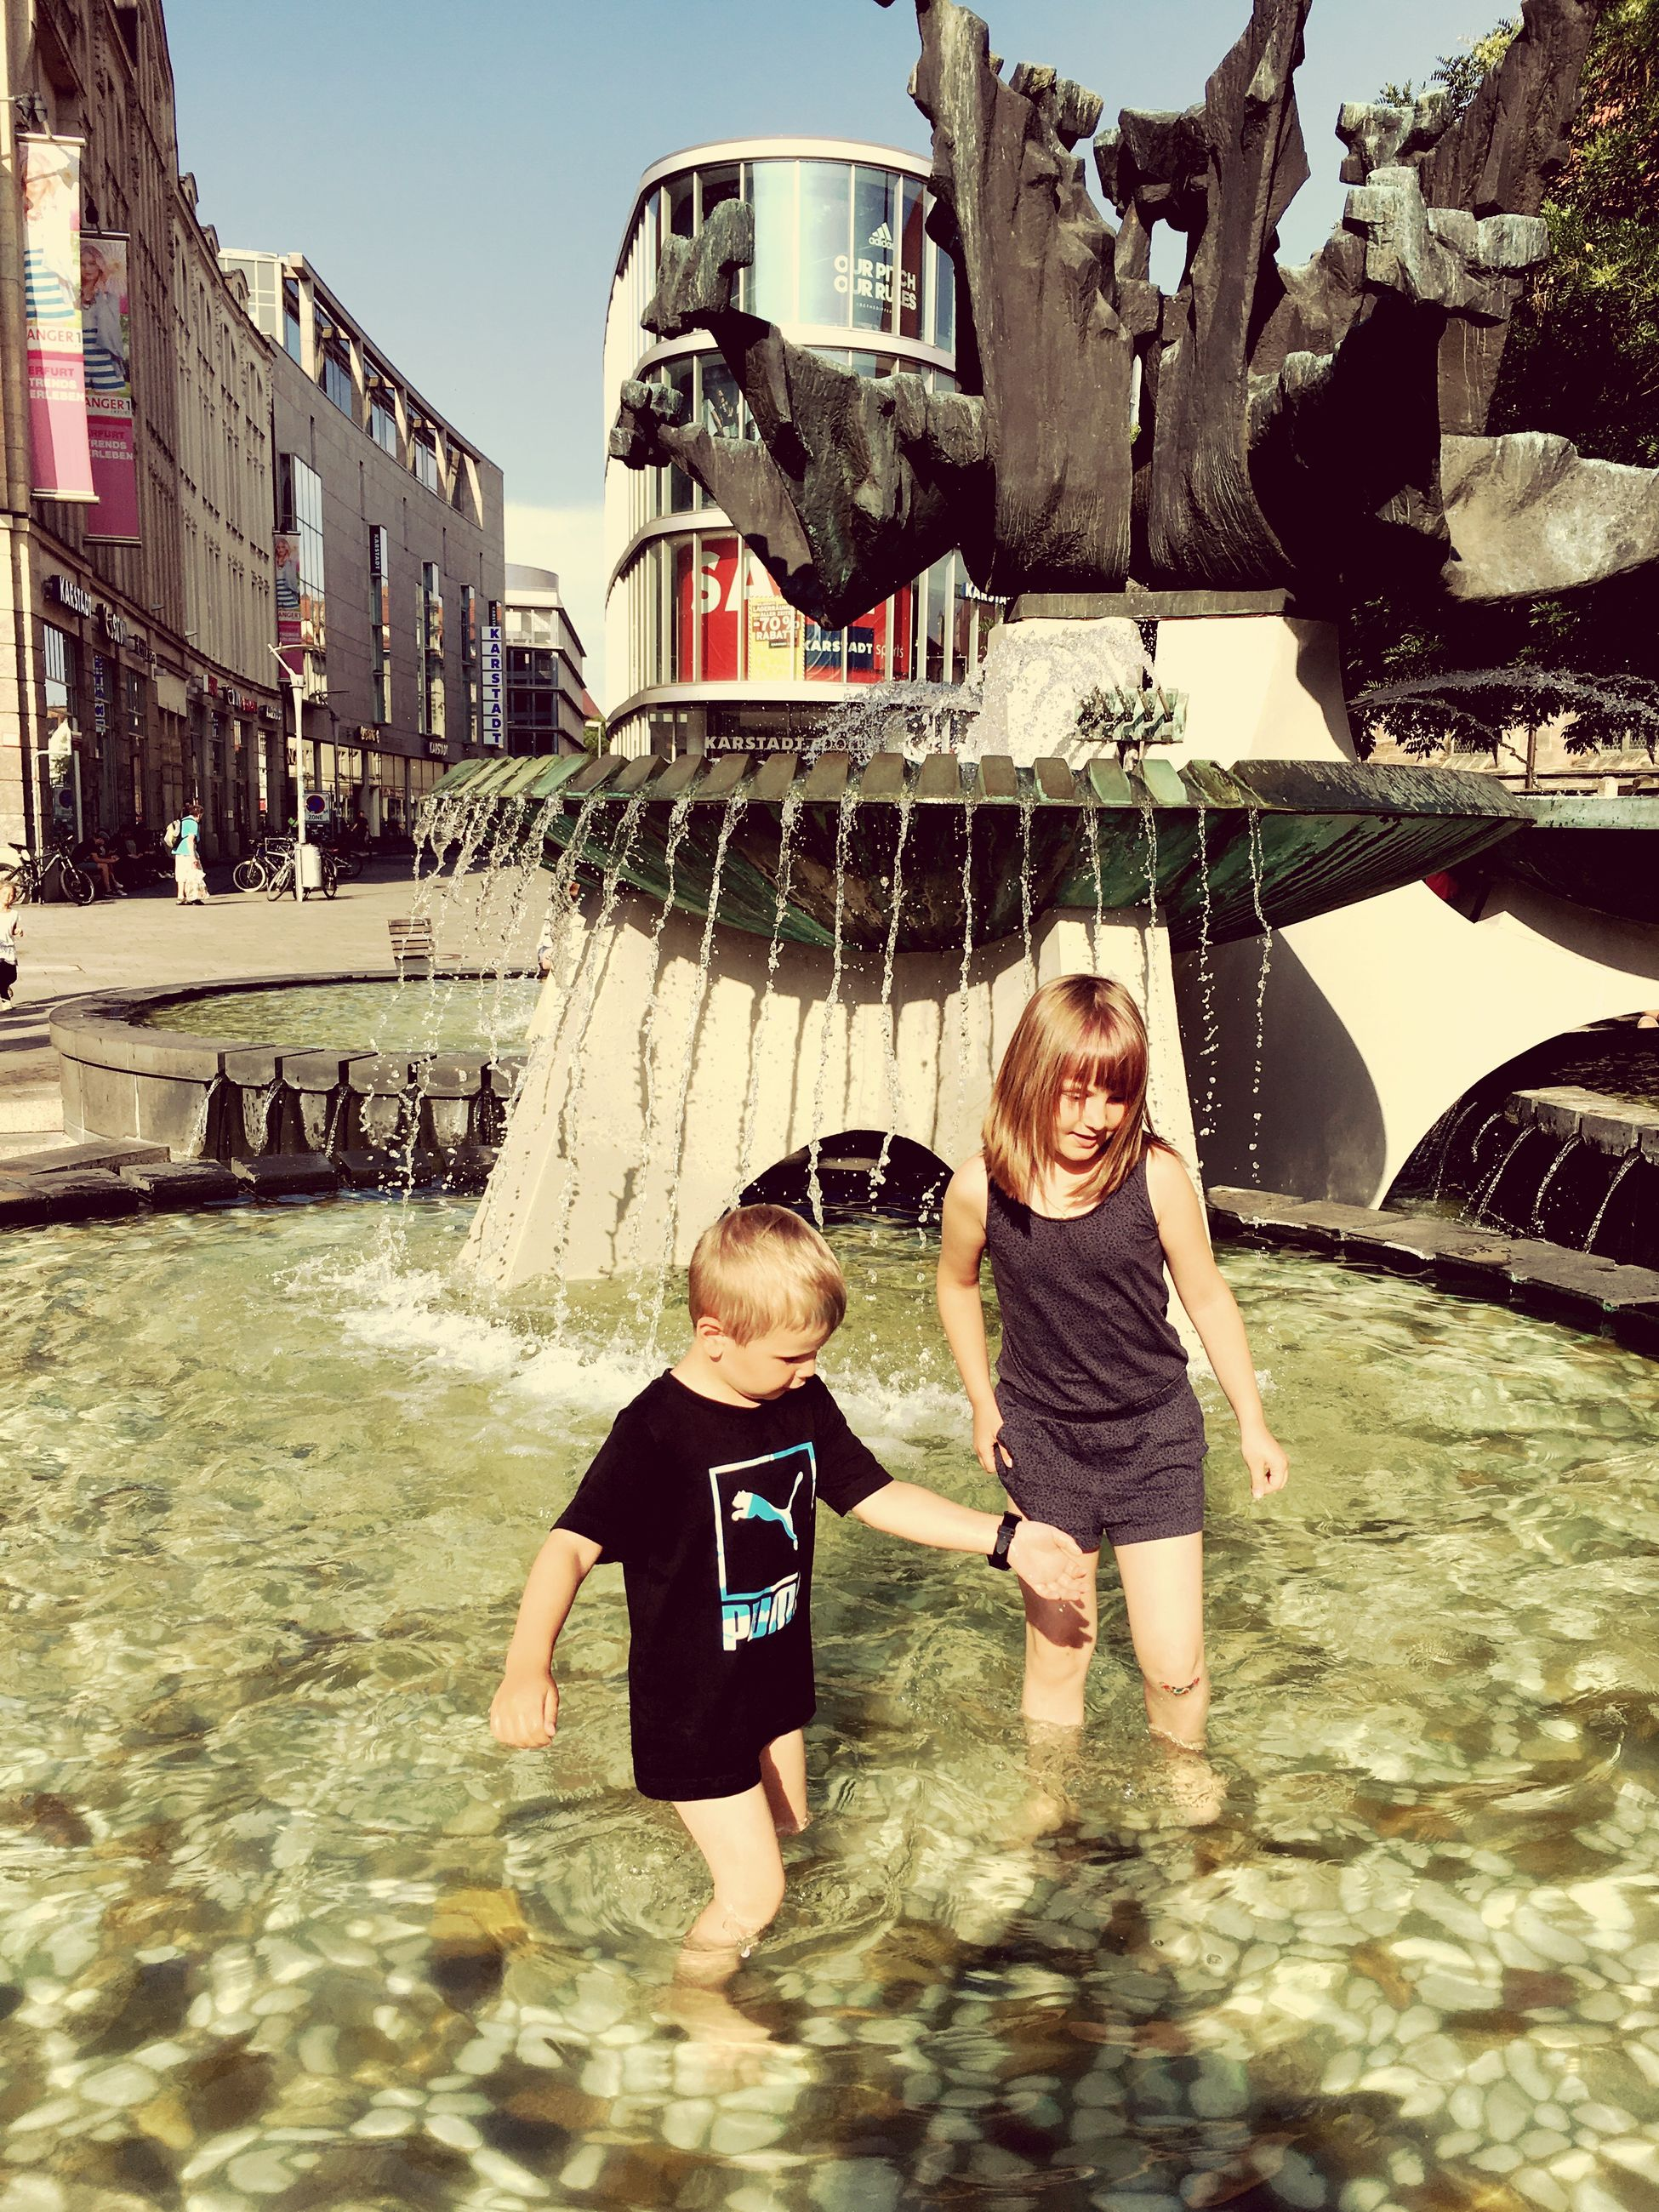 childhood, togetherness, boys, building exterior, built structure, architecture, girls, elementary age, bonding, leisure activity, family, lifestyles, casual clothing, sibling, playing, city, day, person, outdoors, single mother